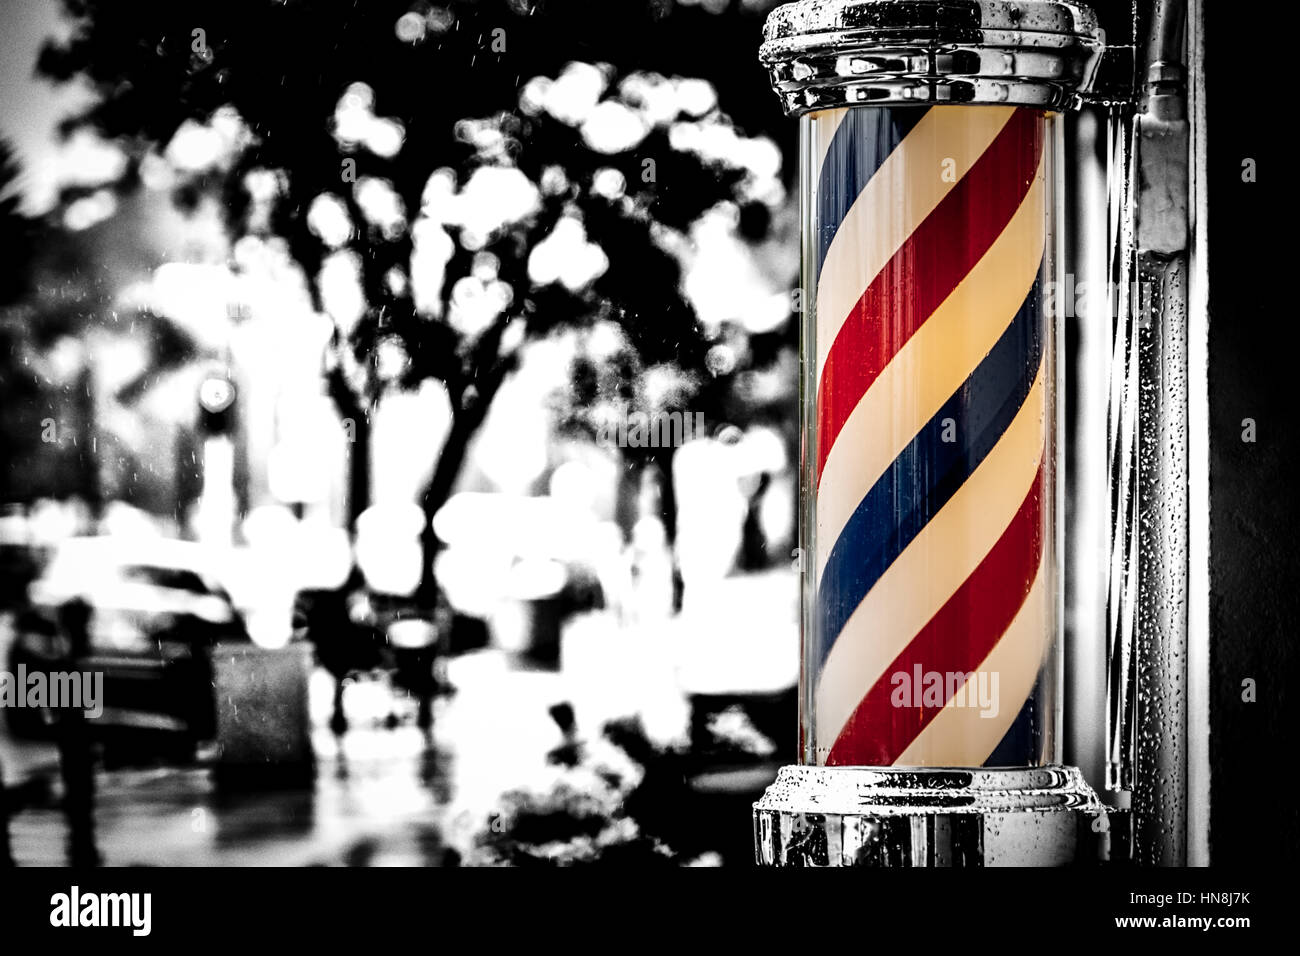 Rain collecting on a barber shop pole in southern California. - Stock Image